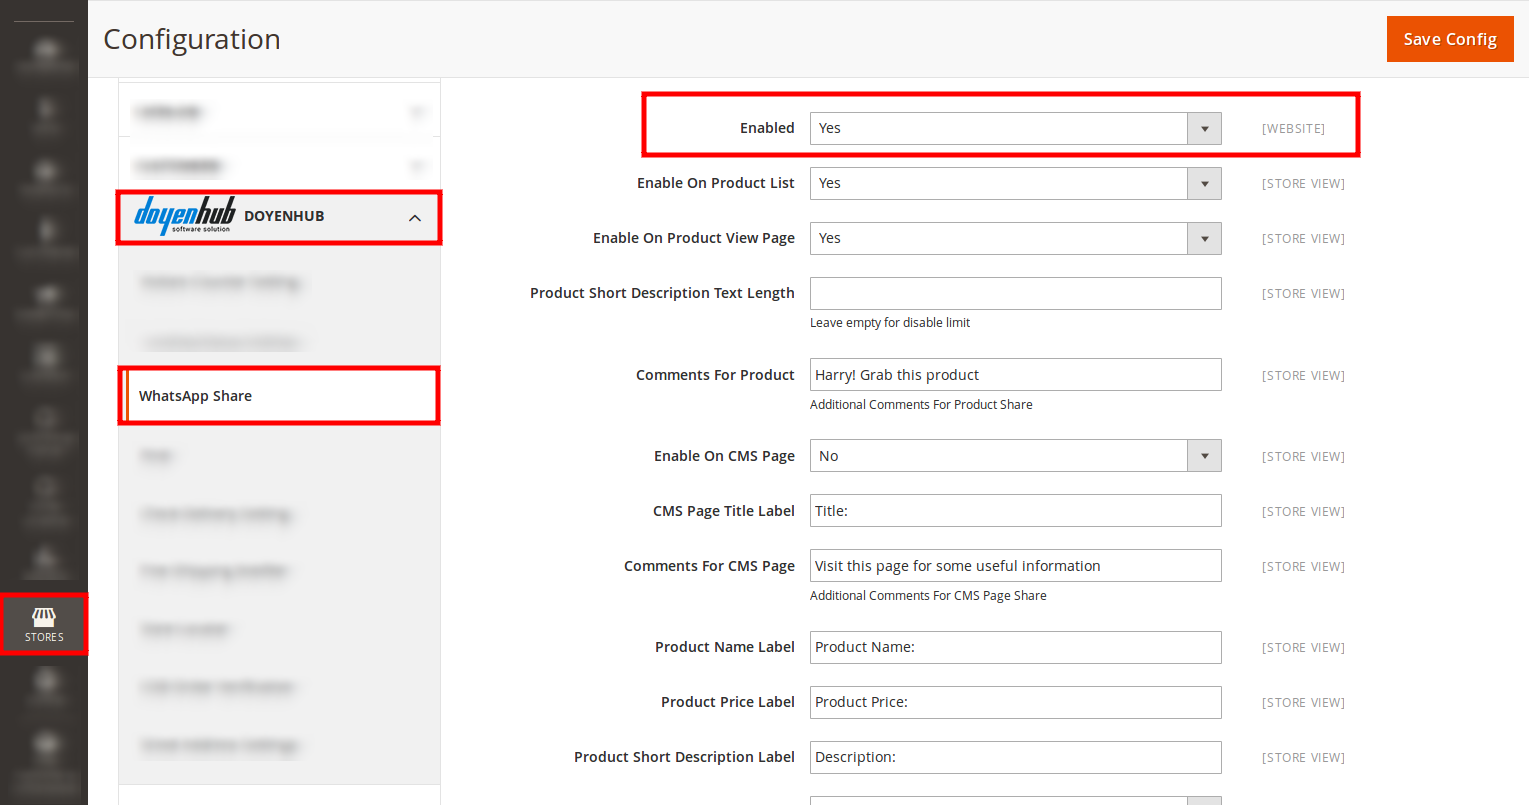 You can enable/disable WhatsApp Share extension for product view page